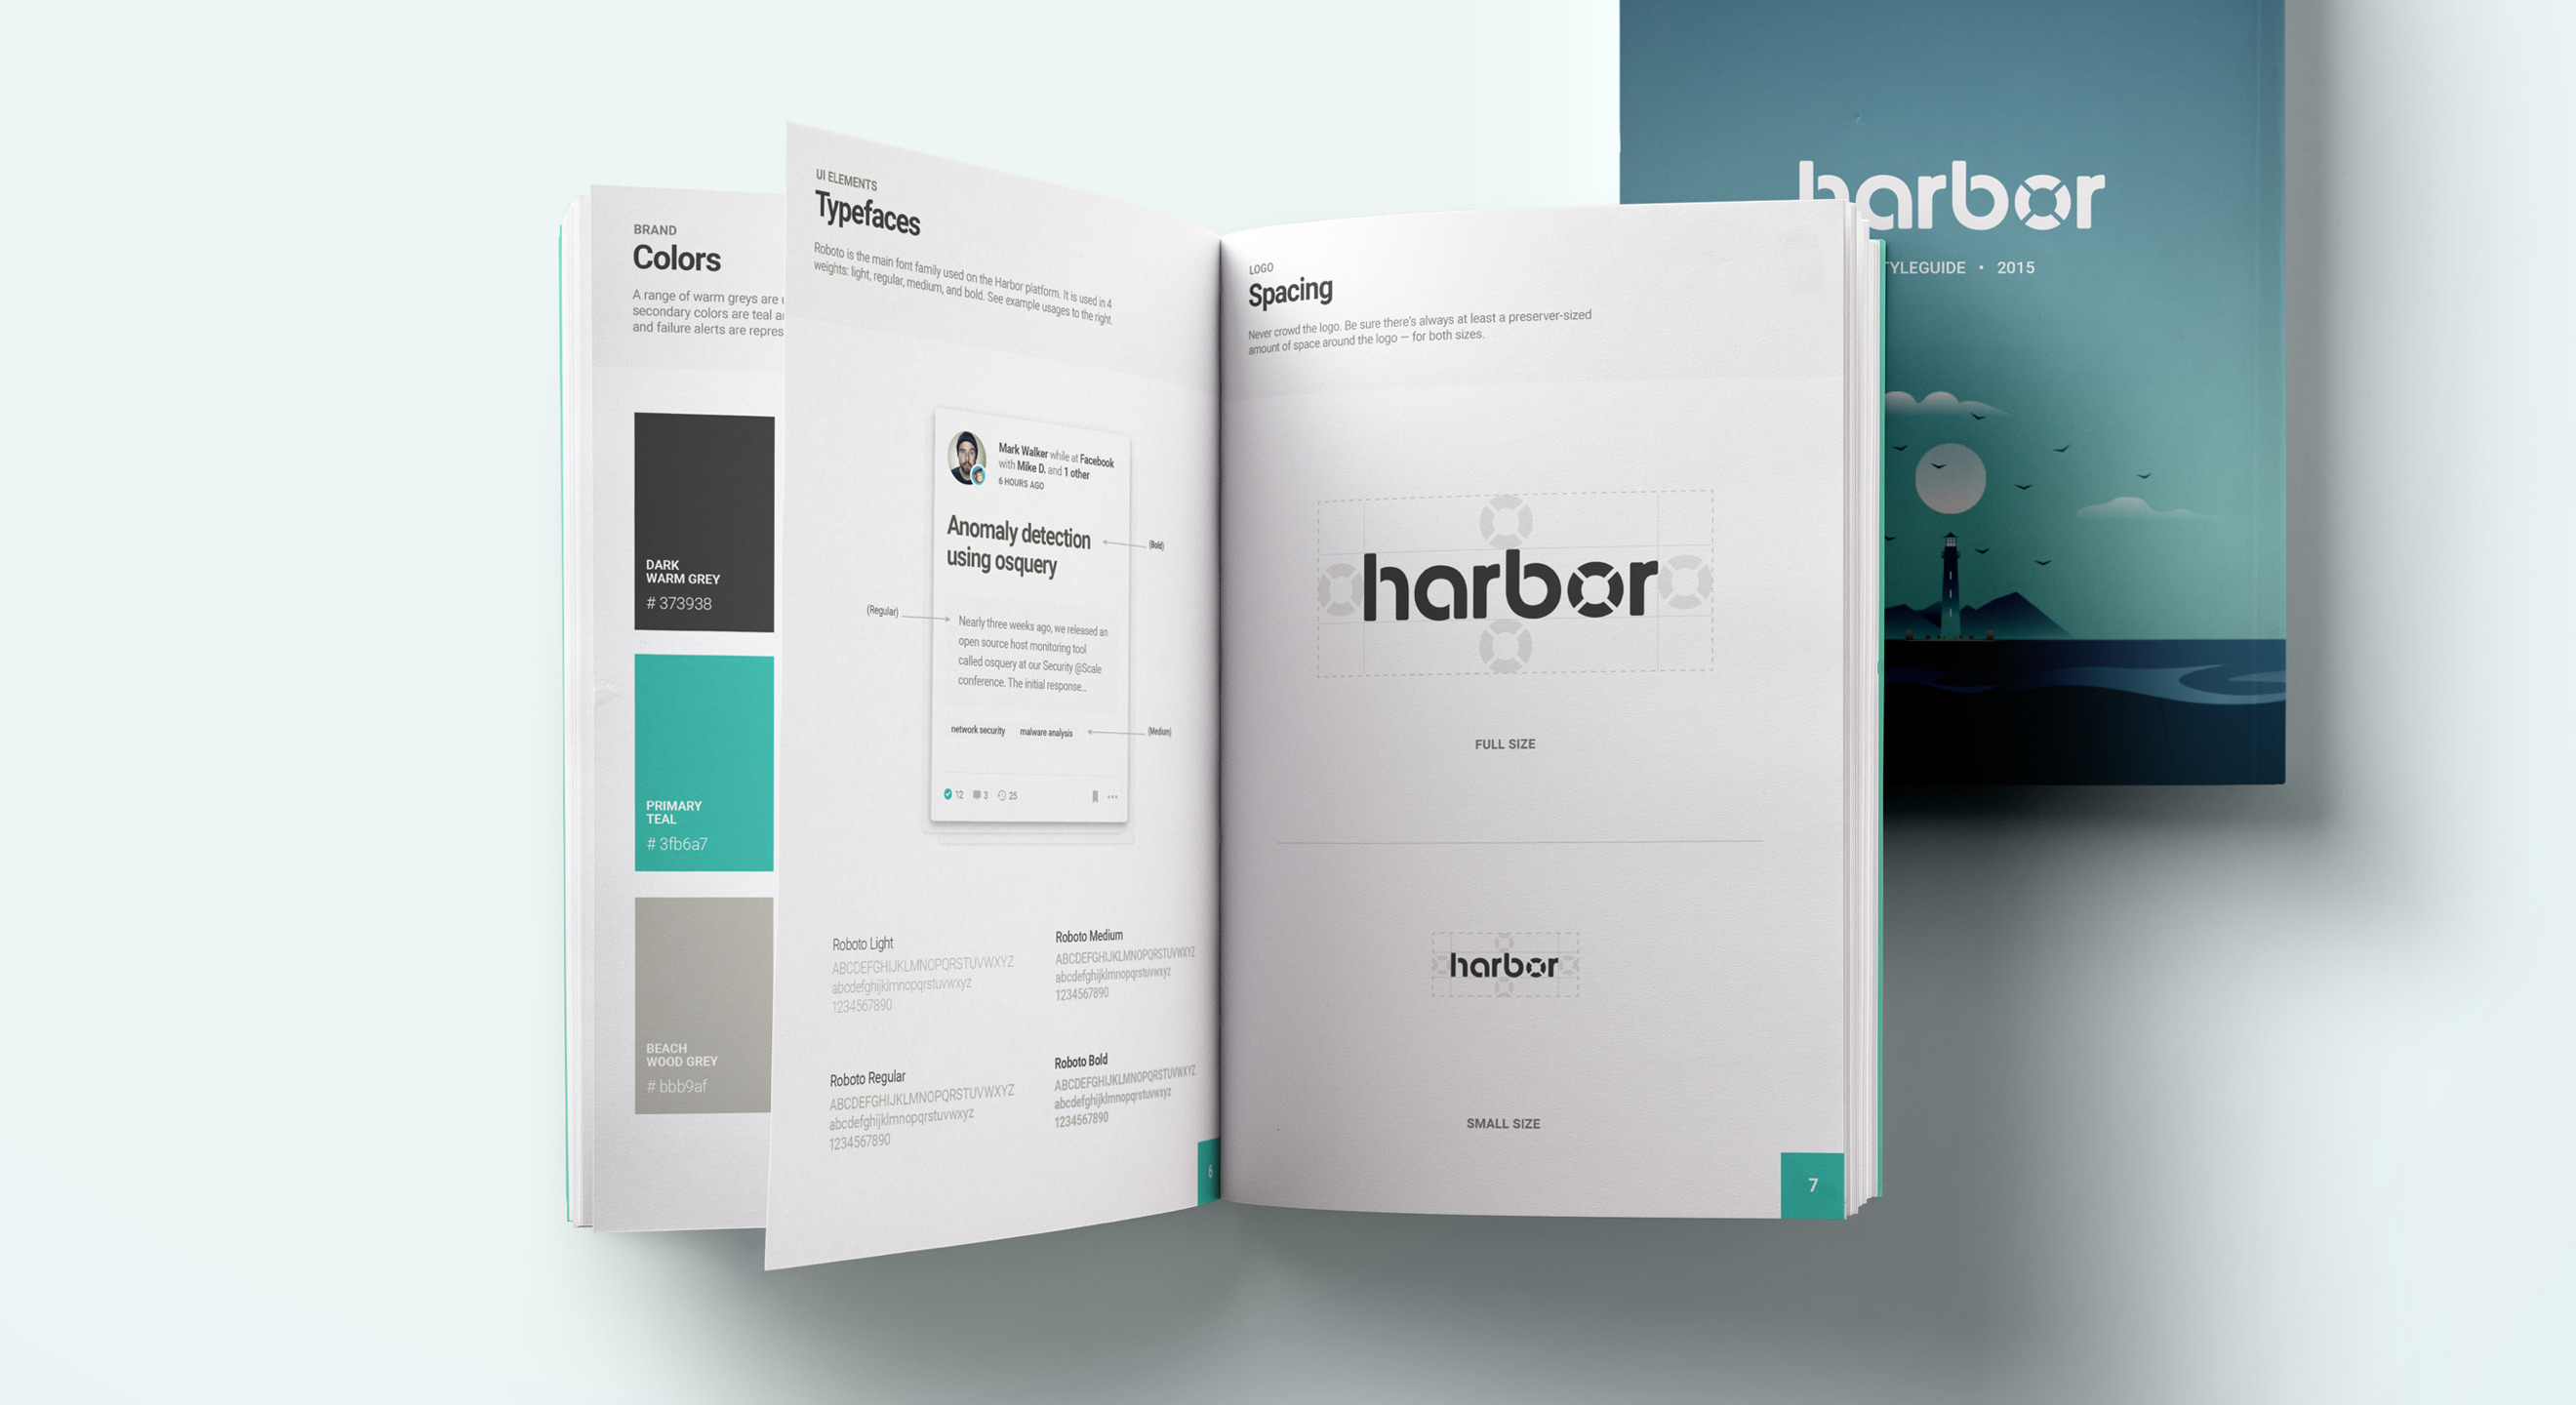 Harbor Brand Guide